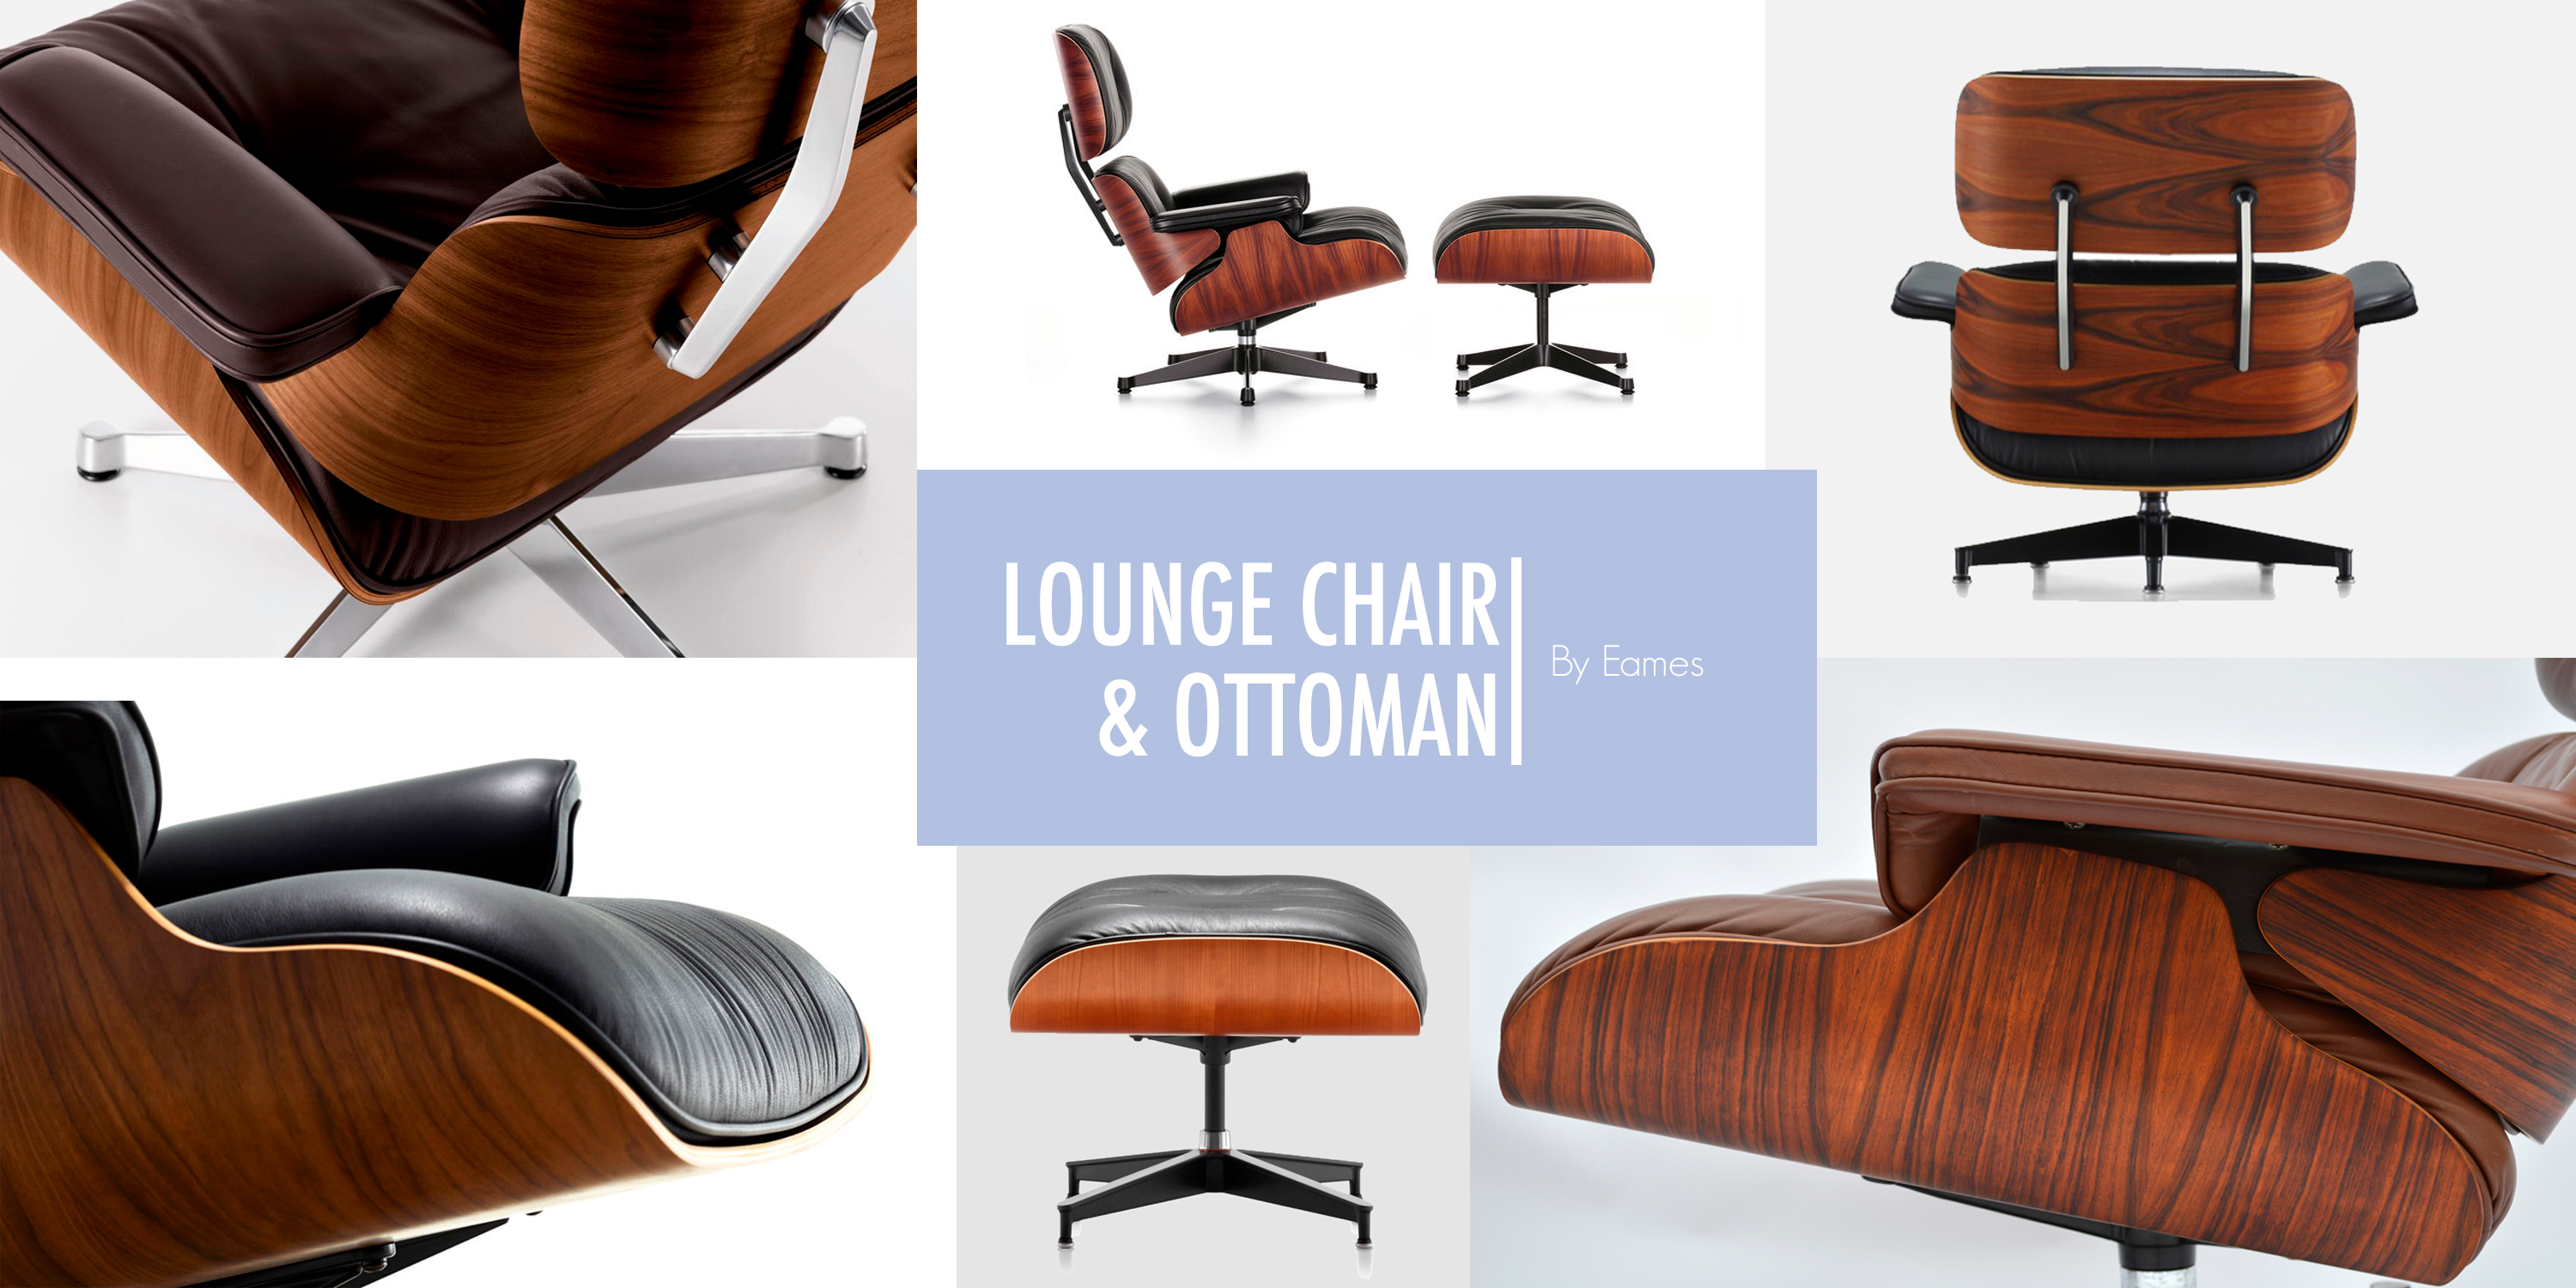 Lounge Chair & Ottoman by Eames